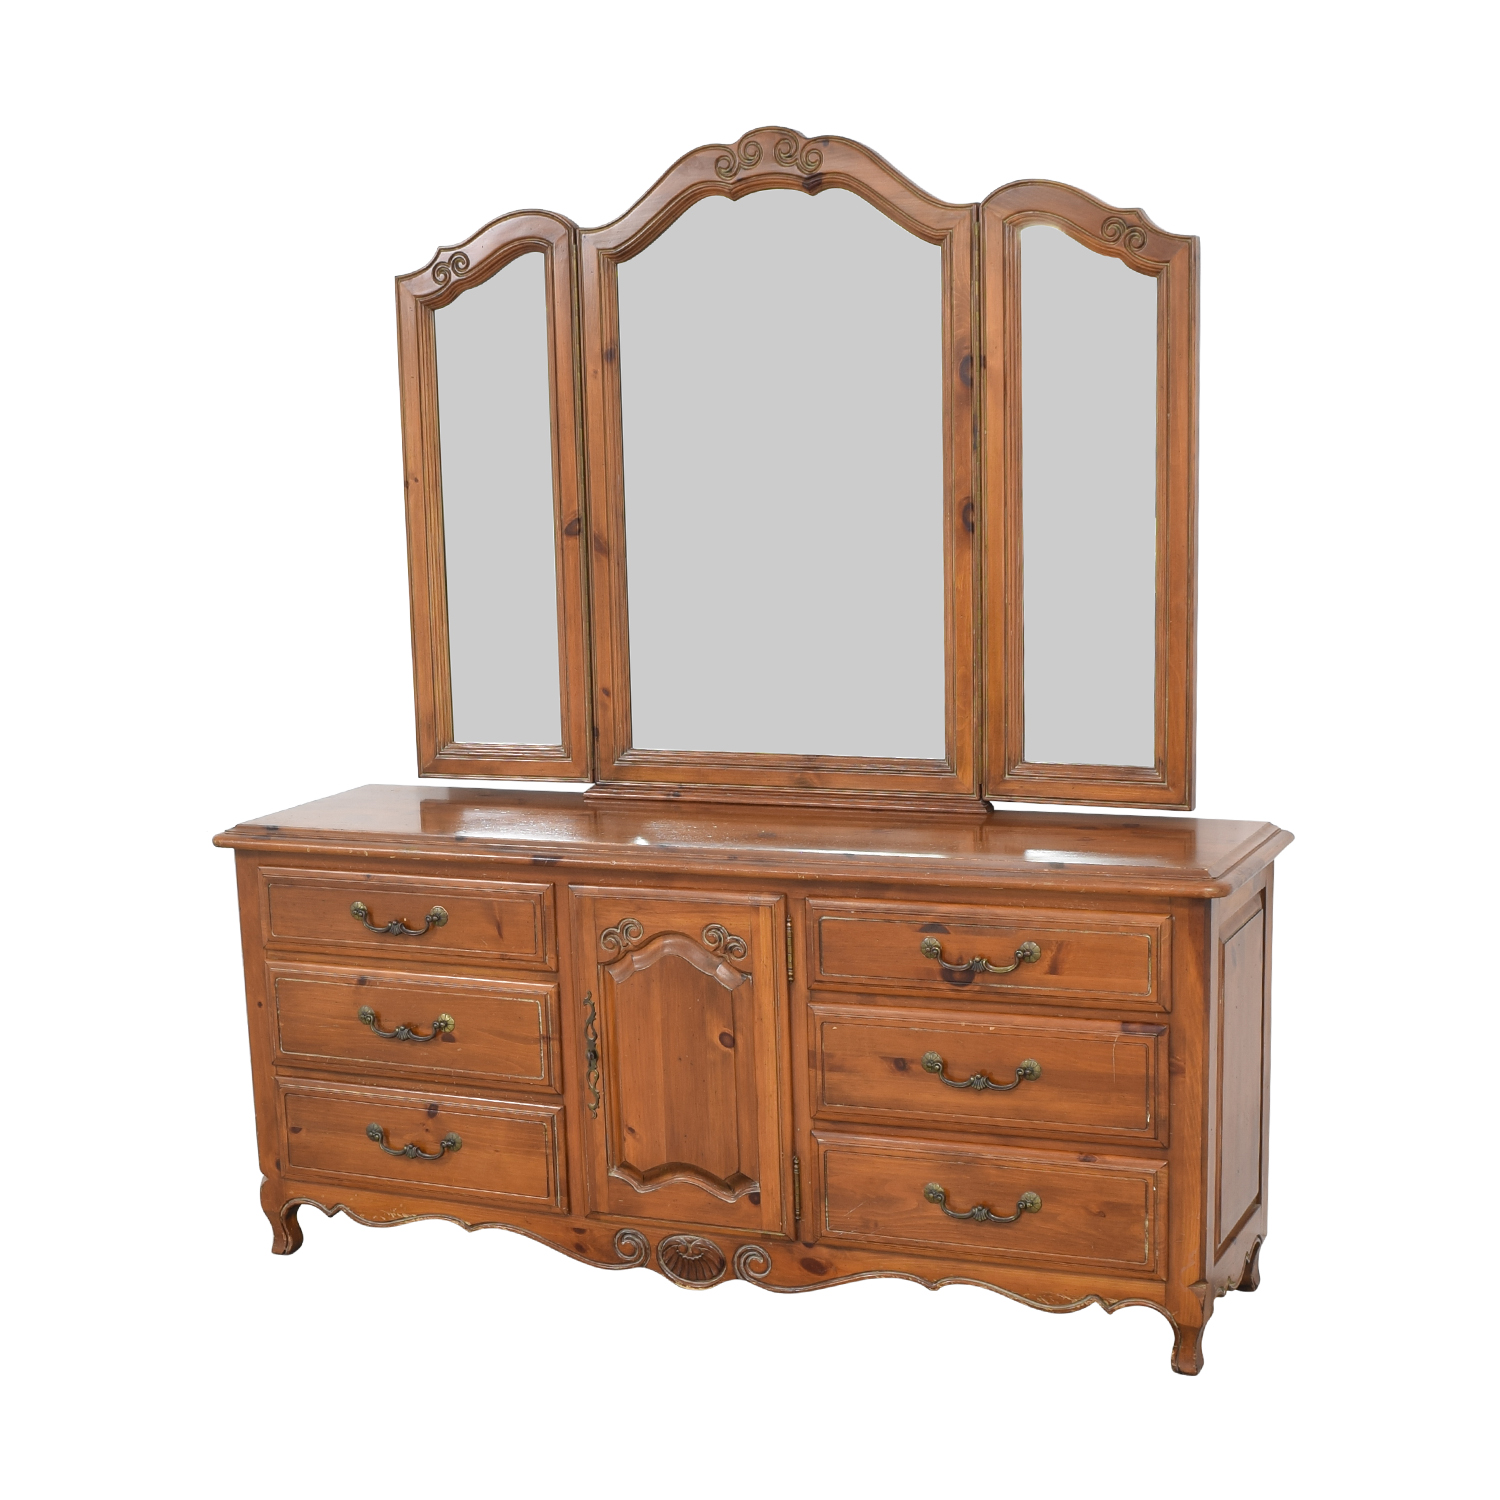 90 Off Ethan Allen Ethan Allen Bedroom Dresser With Vanity Storage